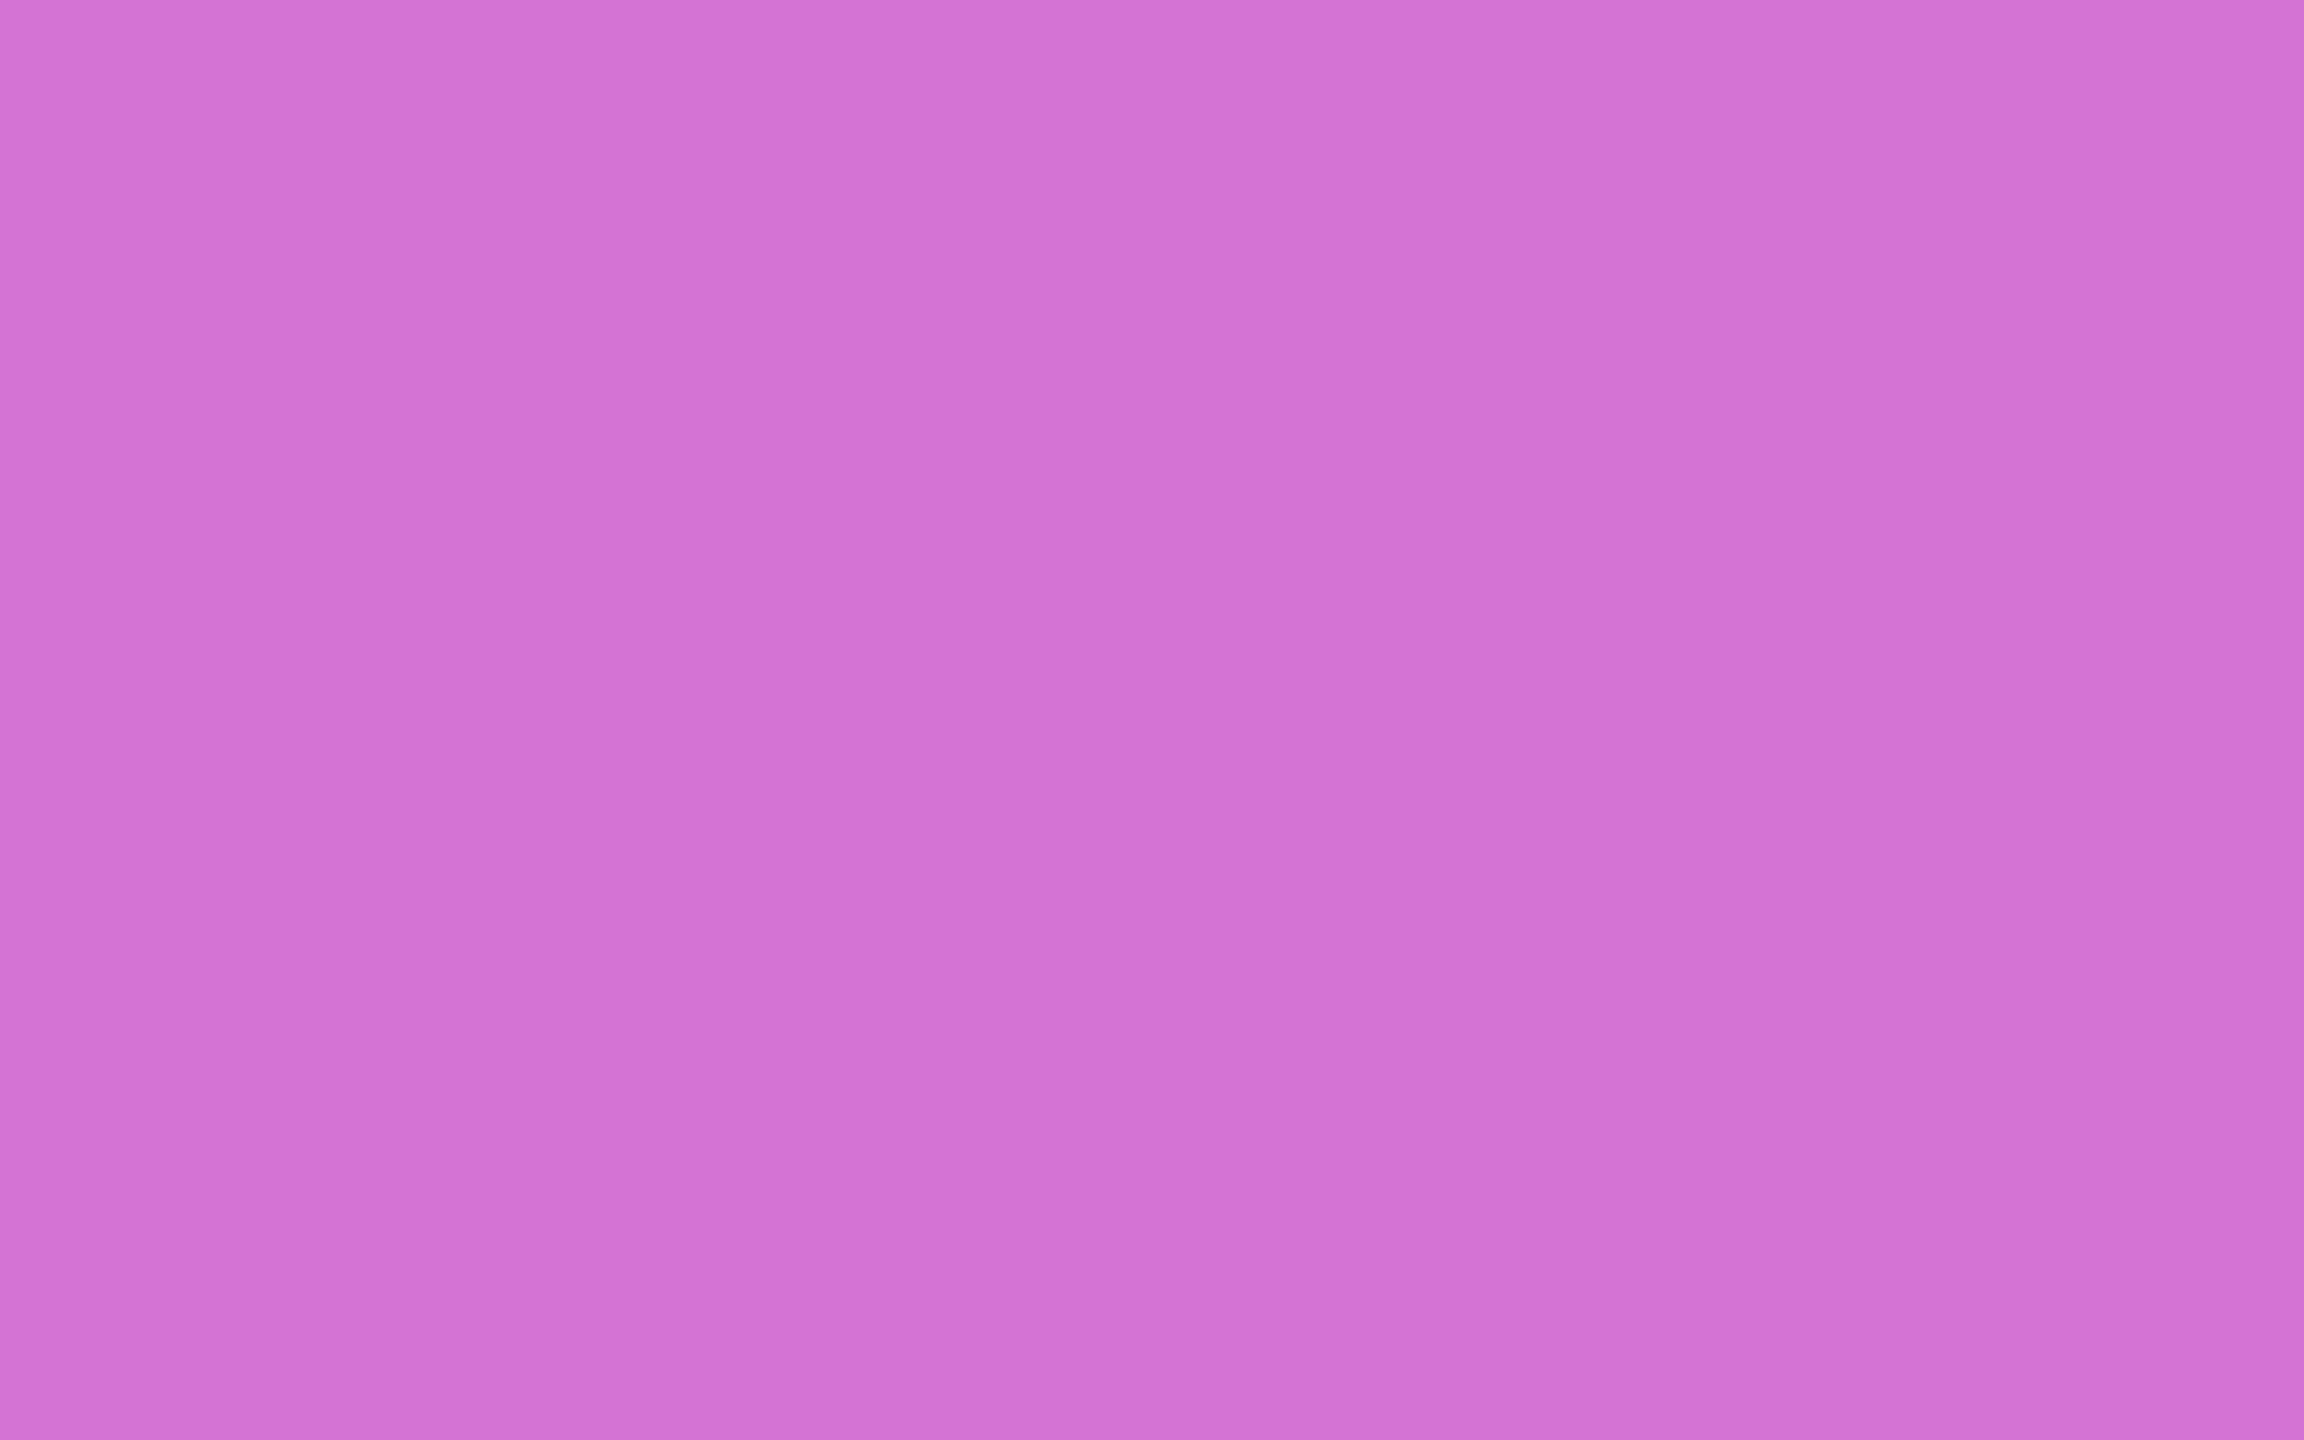 2304x1440 French Mauve Solid Color Background